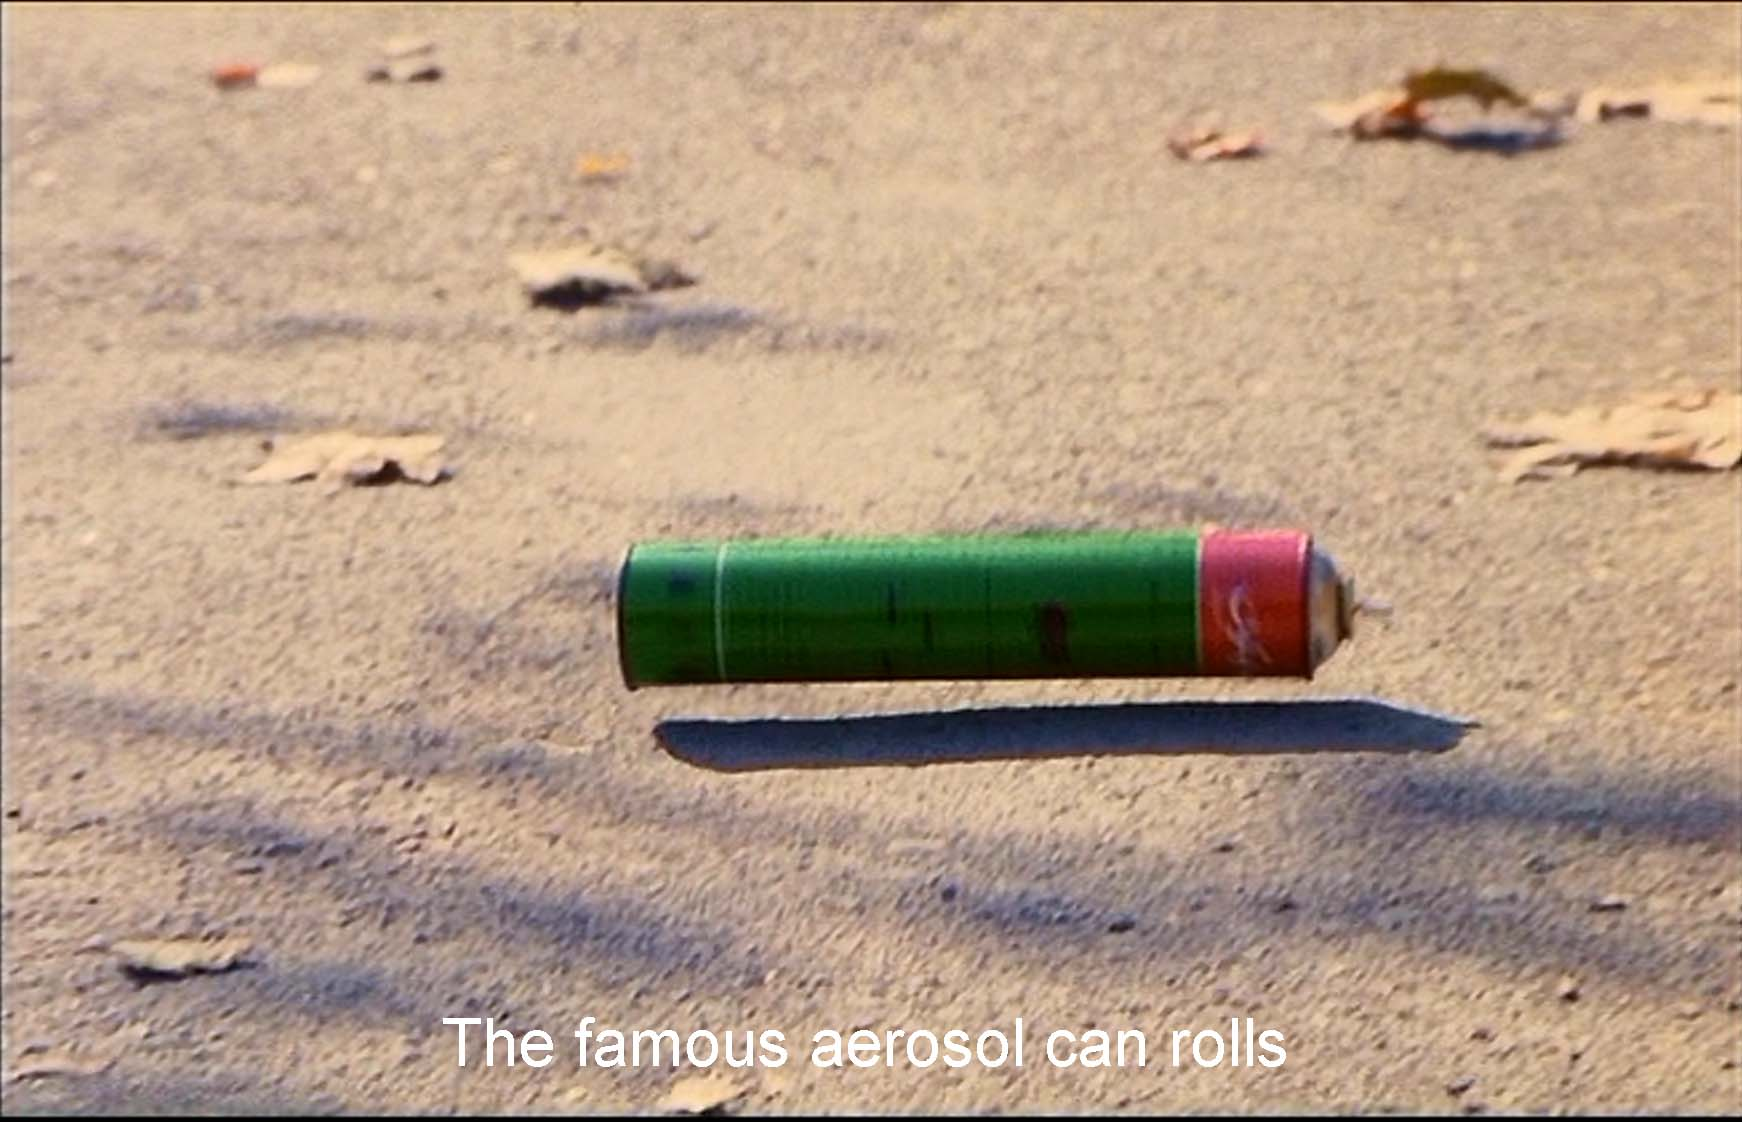 The famous aerosol can rolls